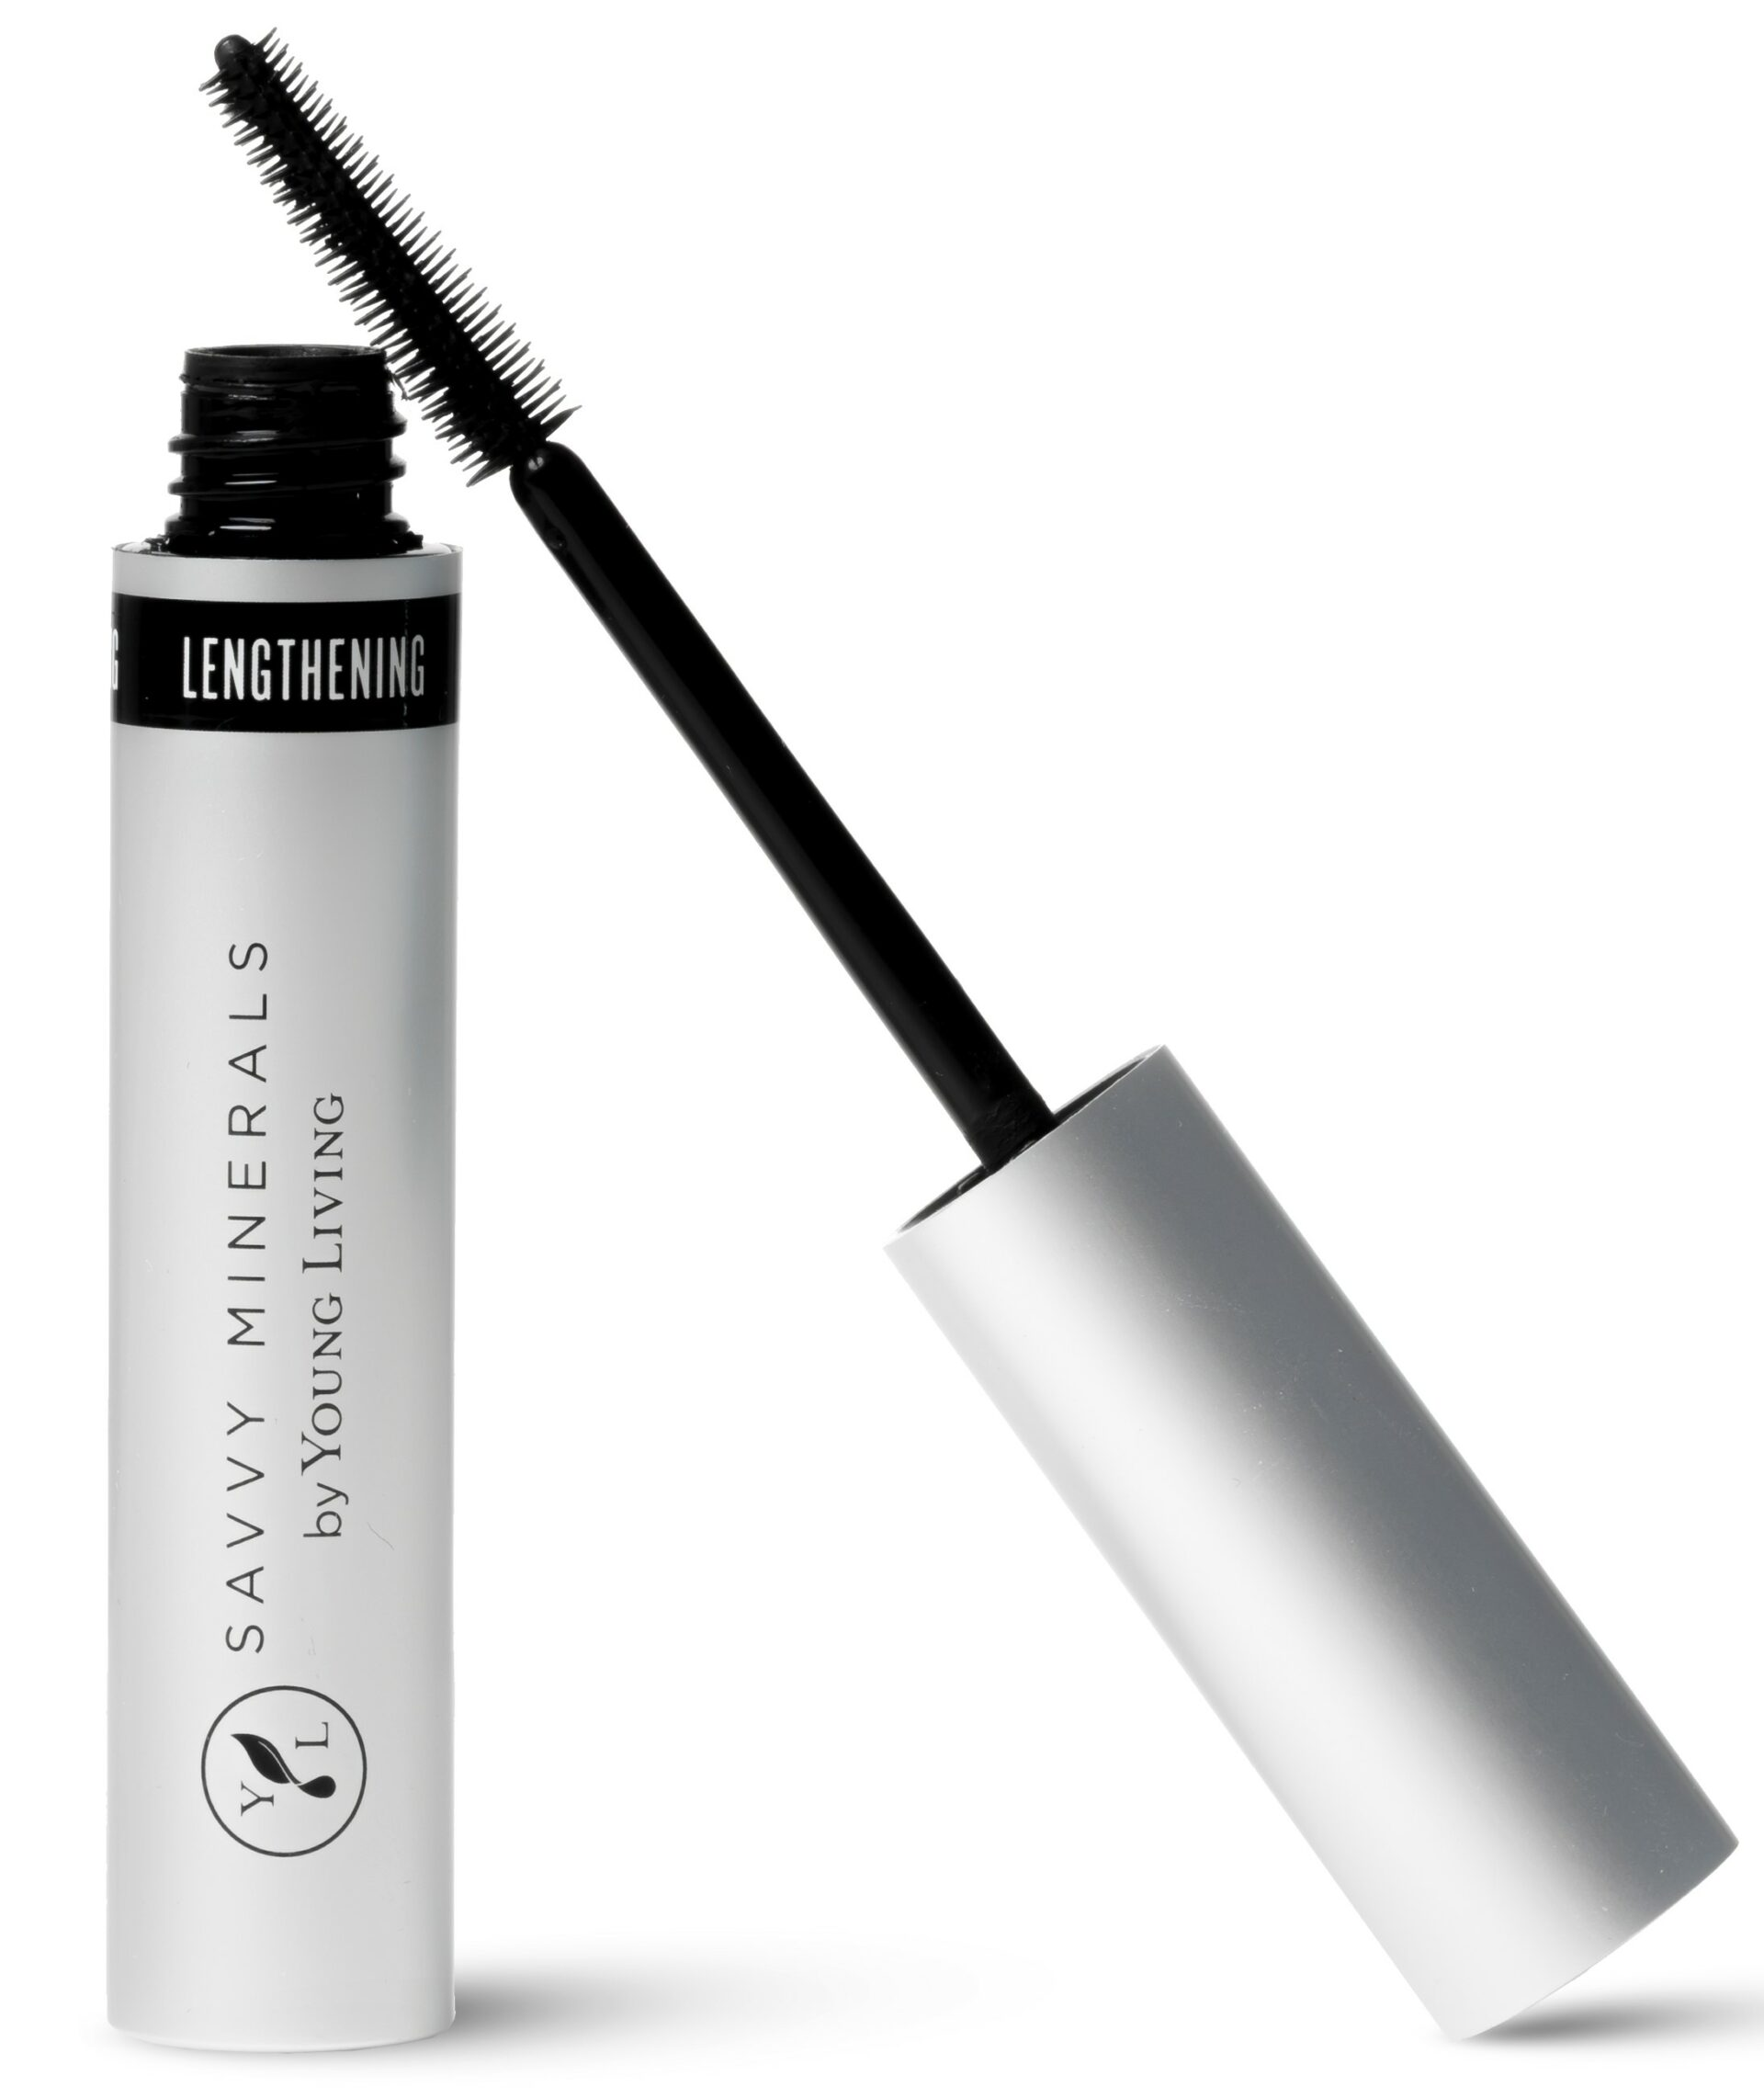 Savvy Minerals Lengthening Mascara - Young Living Essential Oils